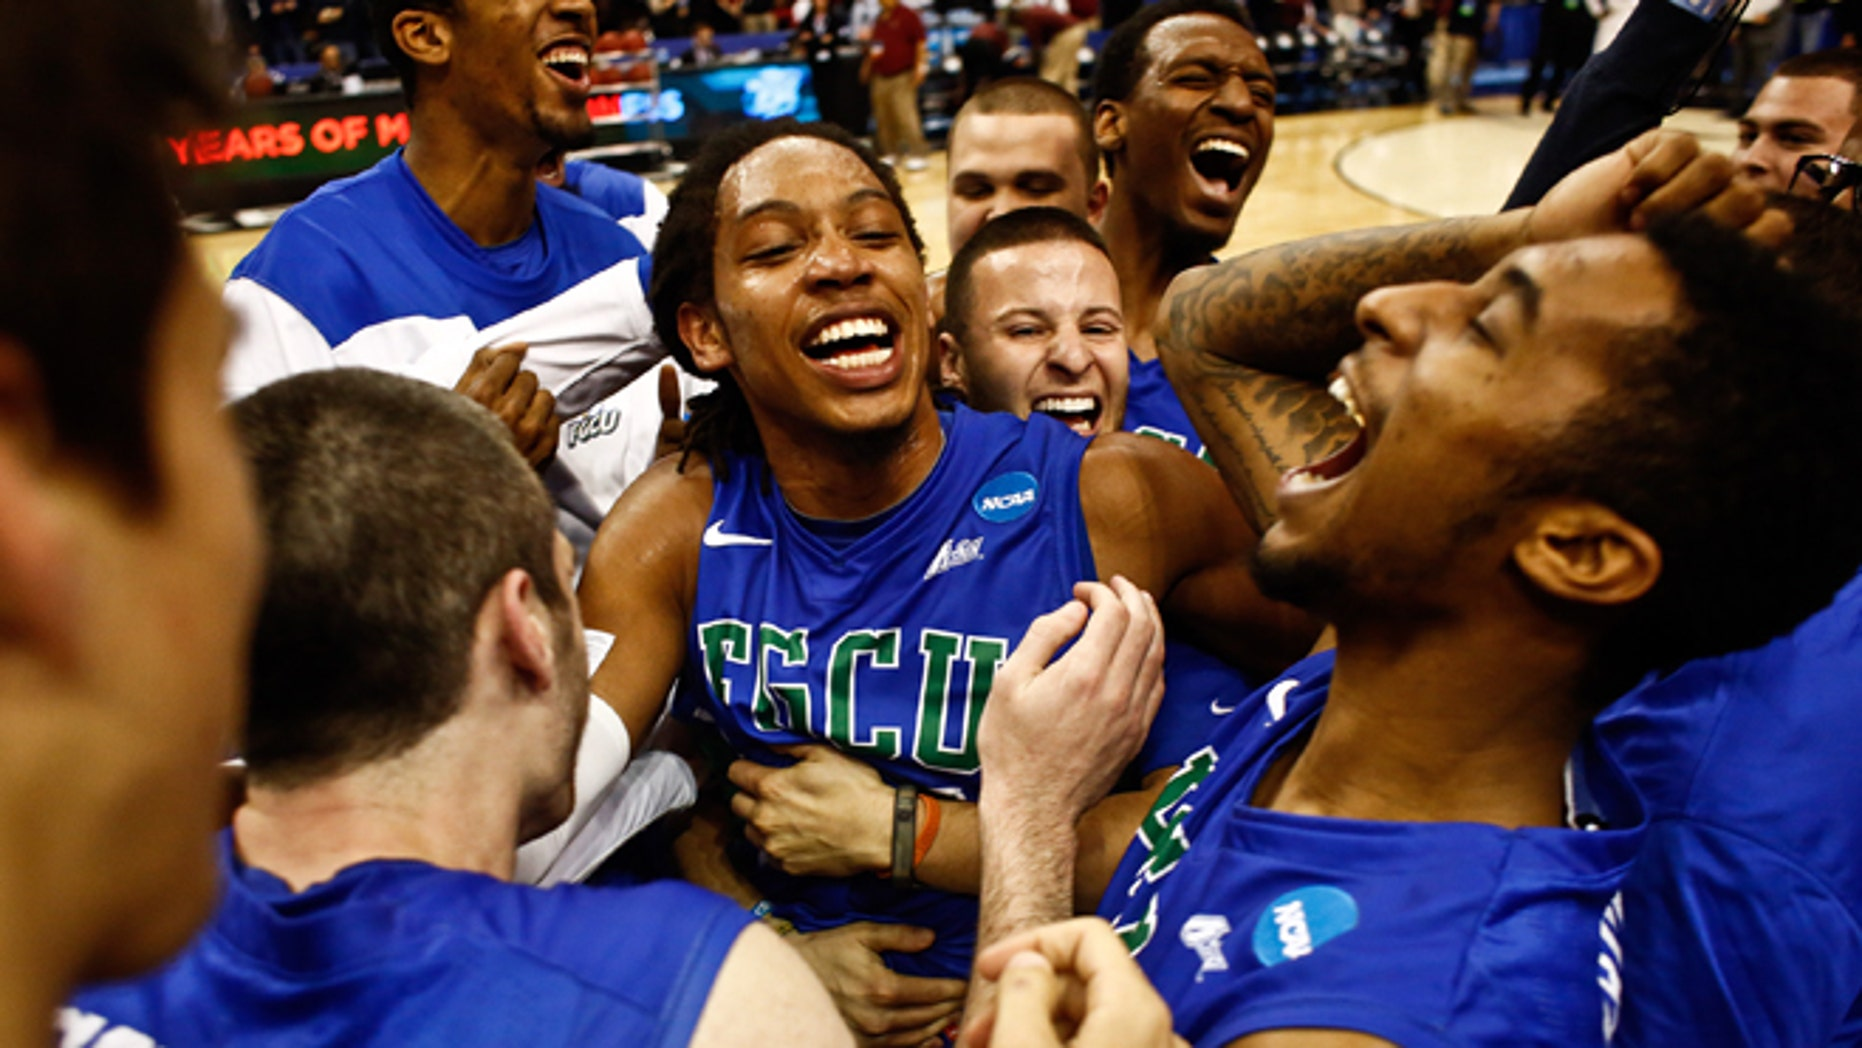 Florida Gulf Coast players celebrate after winning a third-round game against San Diego State in the NCAA college basketball tournament, Sunday, March 24, 2013, in Philadelphia. Florida Gulf Coast won 81-71. (AP Photo/Naples Daily News, Scott McIntyre)